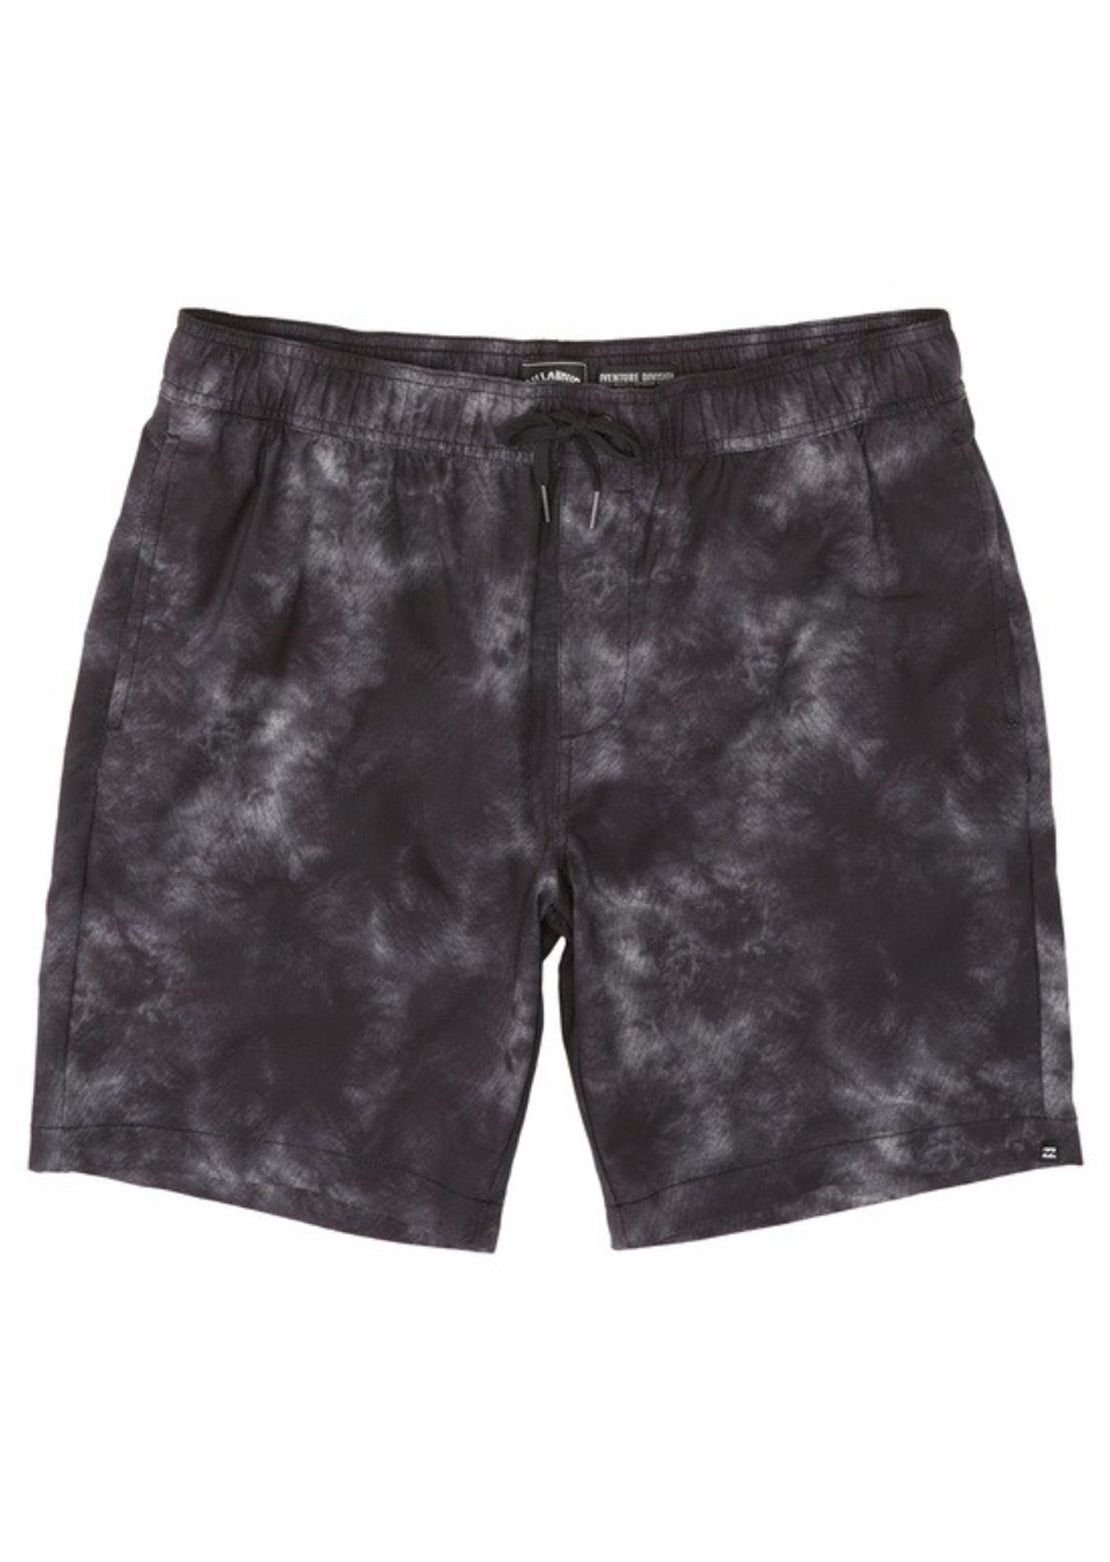 Billabong Men's Surftrek Perf Shorts Grey Tie Dye